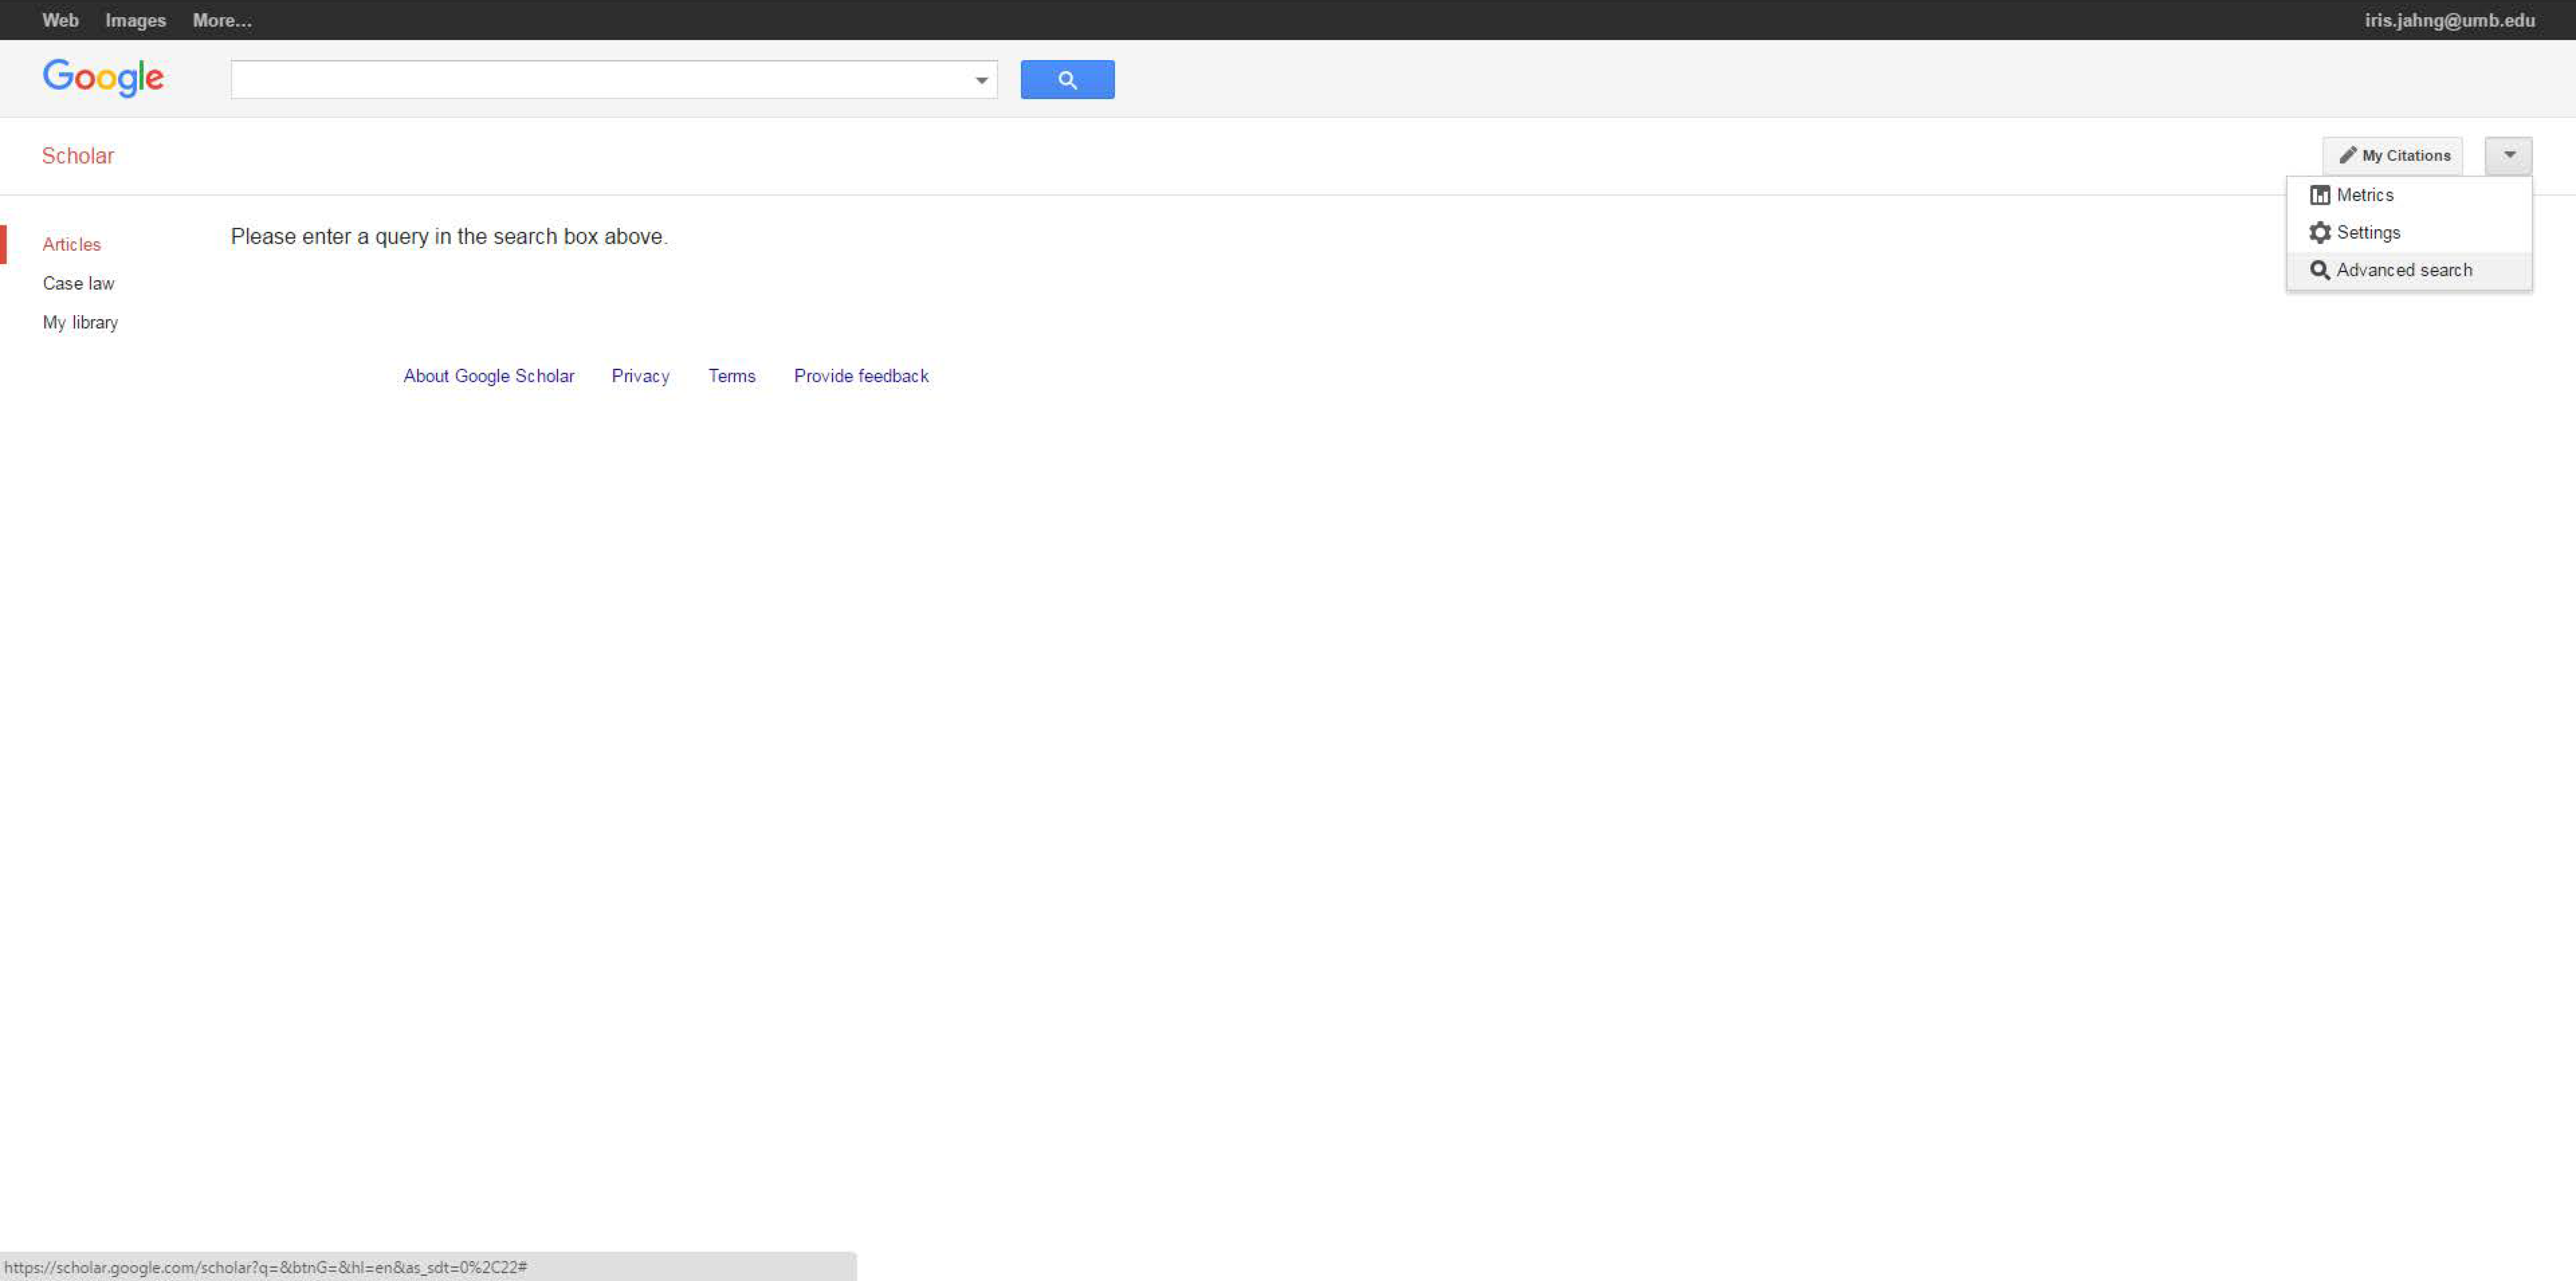 Navigate to Google Scholar's Advanced Search by clicking on the downward-pointing arrow to the right of your screen